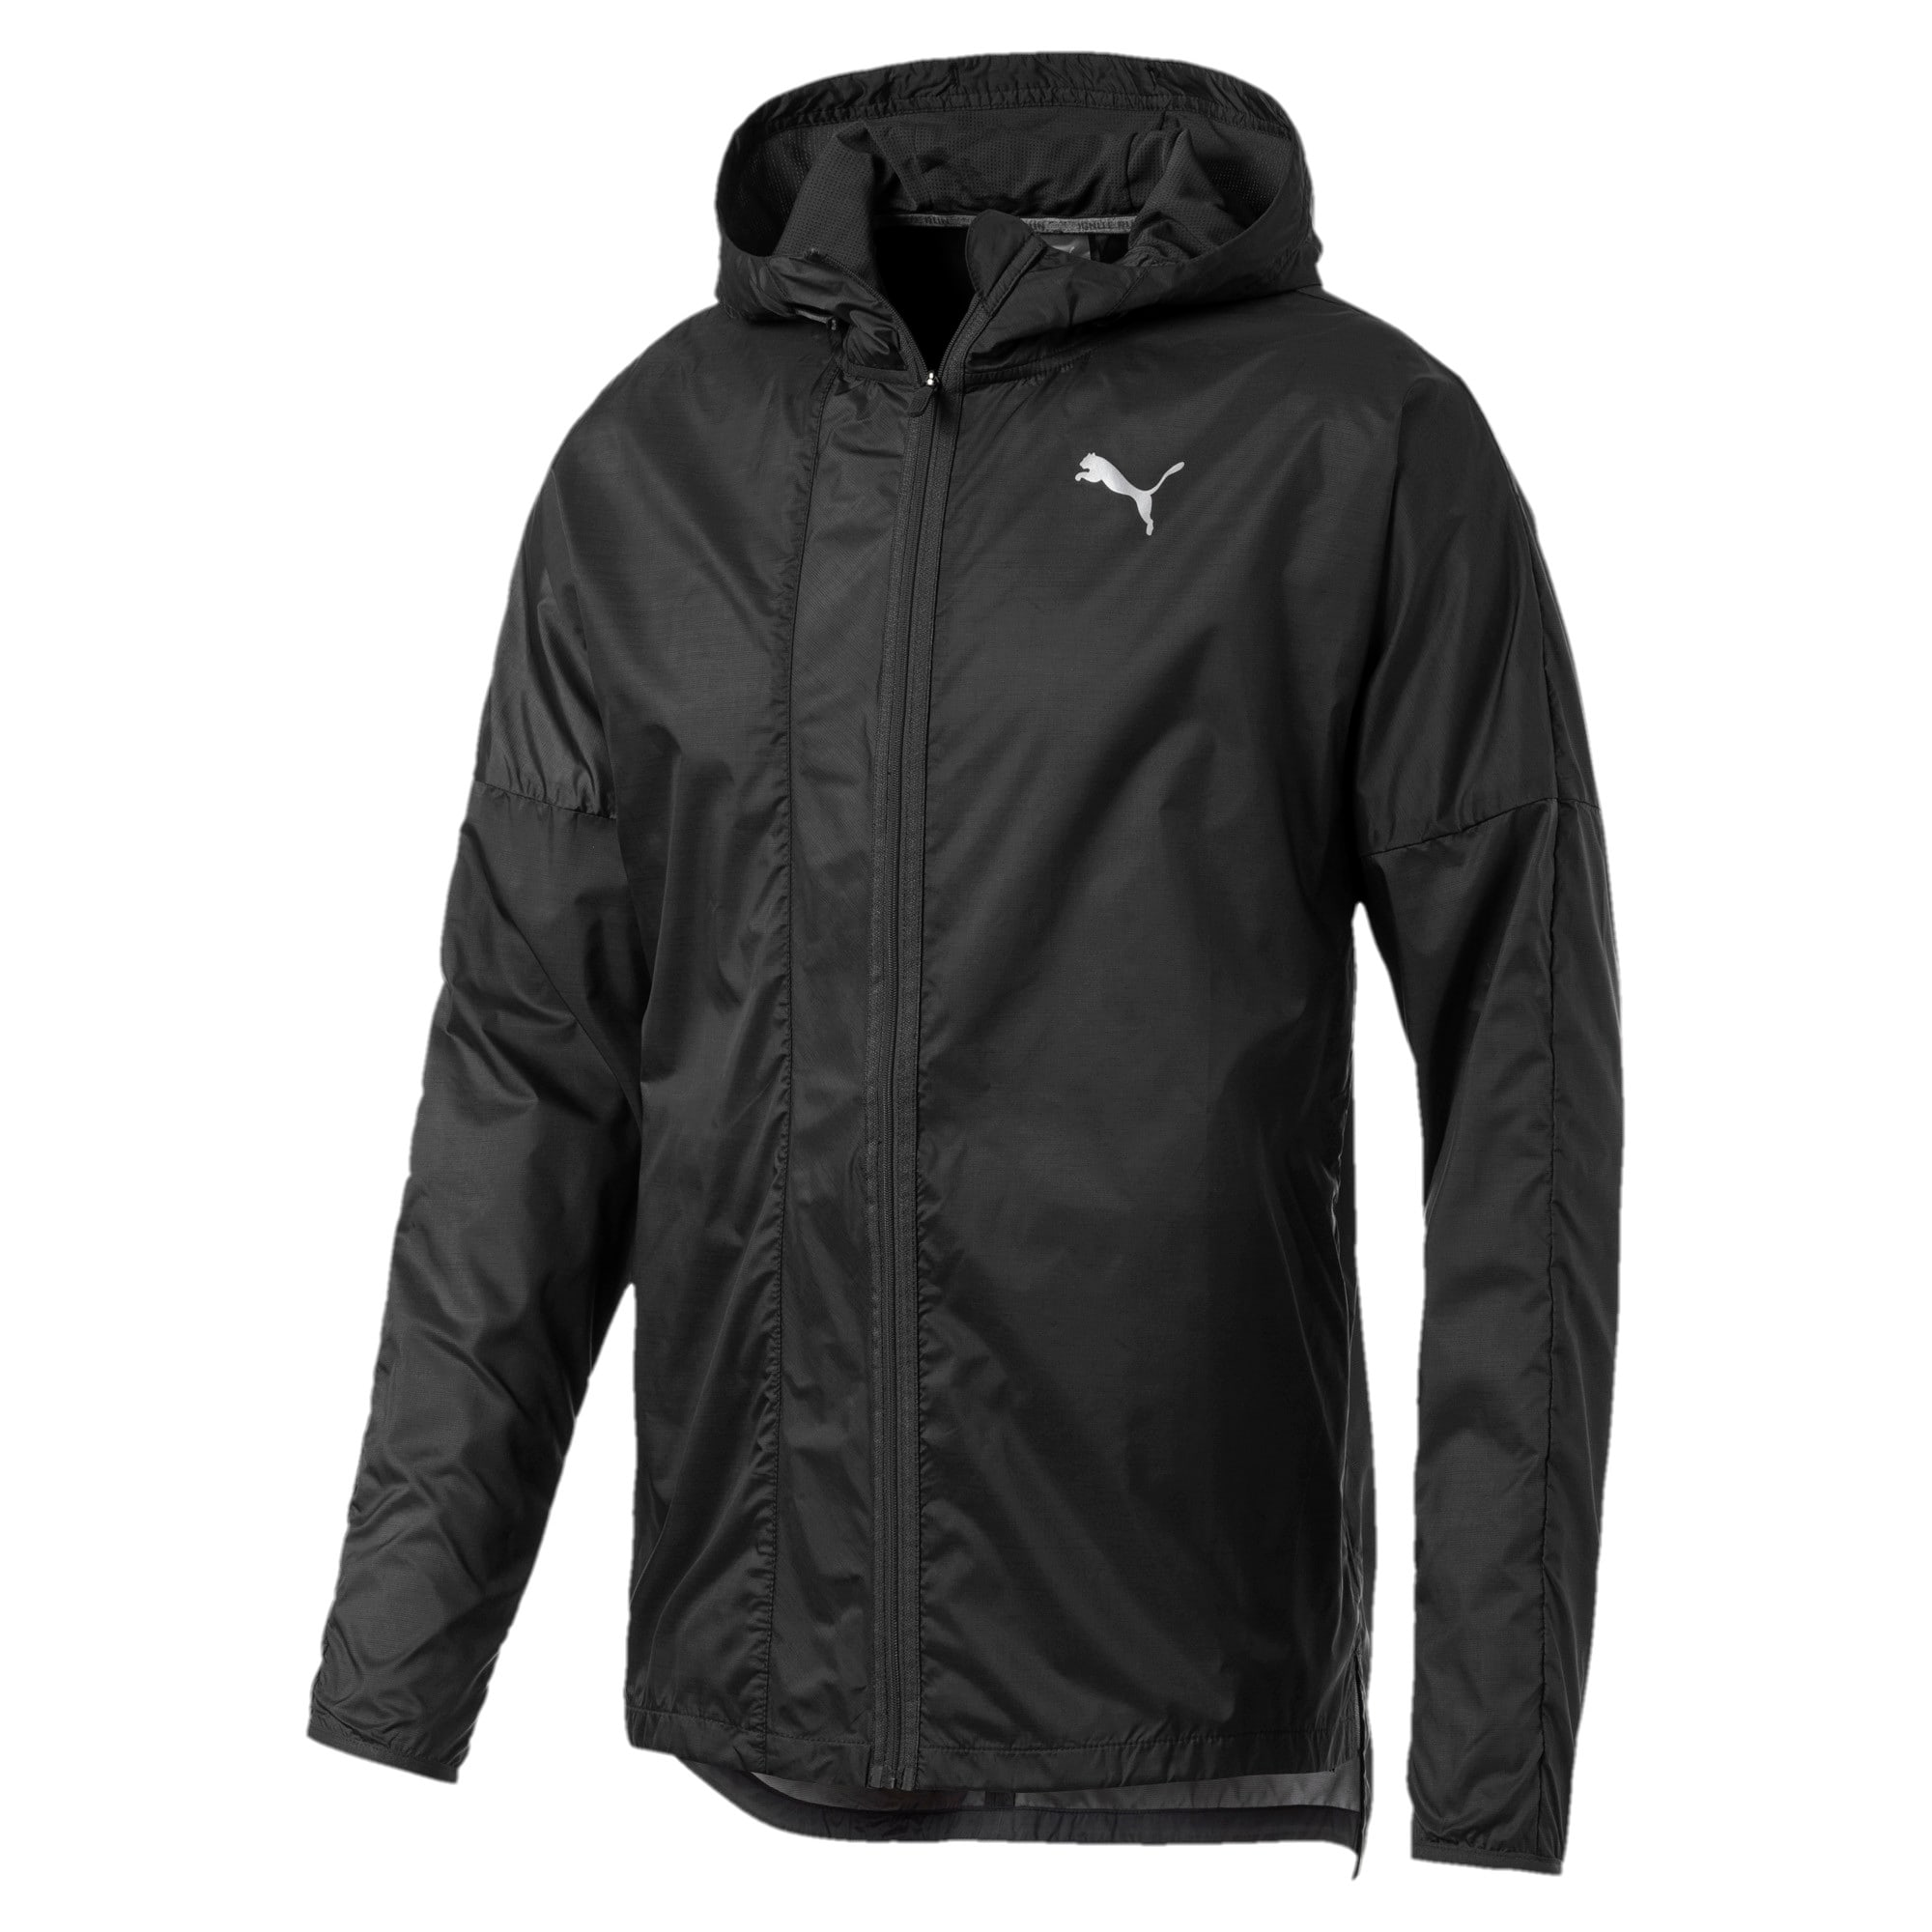 Thumbnail 5 of LastLap Herren Training Jacke, Asphalt Heather, medium